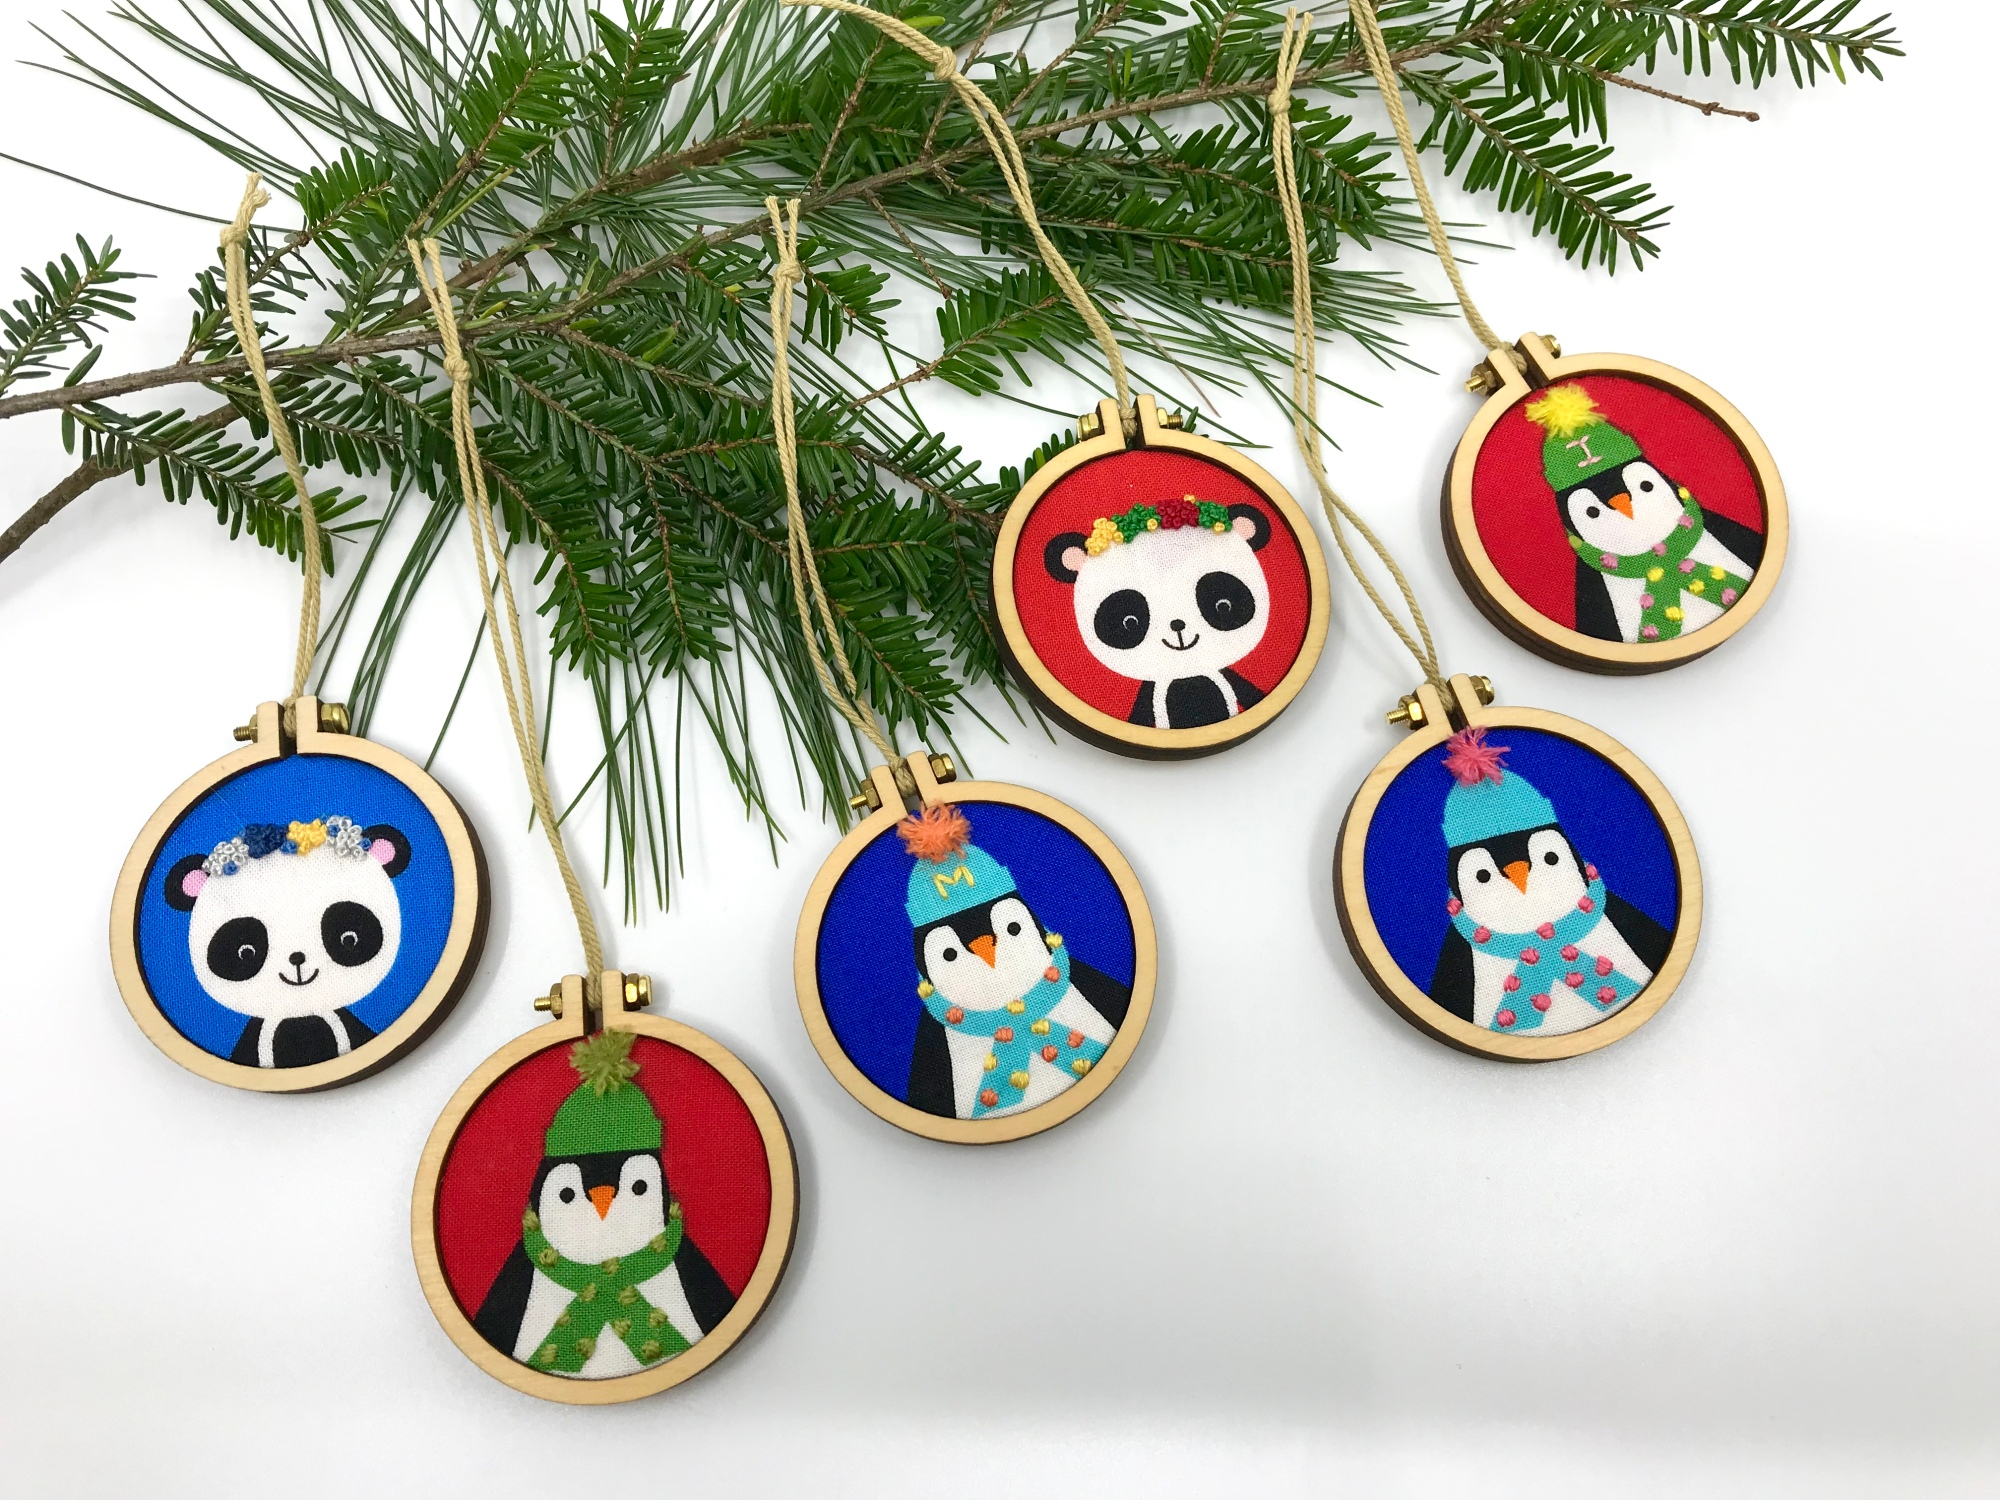 Mini hand-embroidered ornaments by pen&thimble are perfect for the kid's Christmas tree!